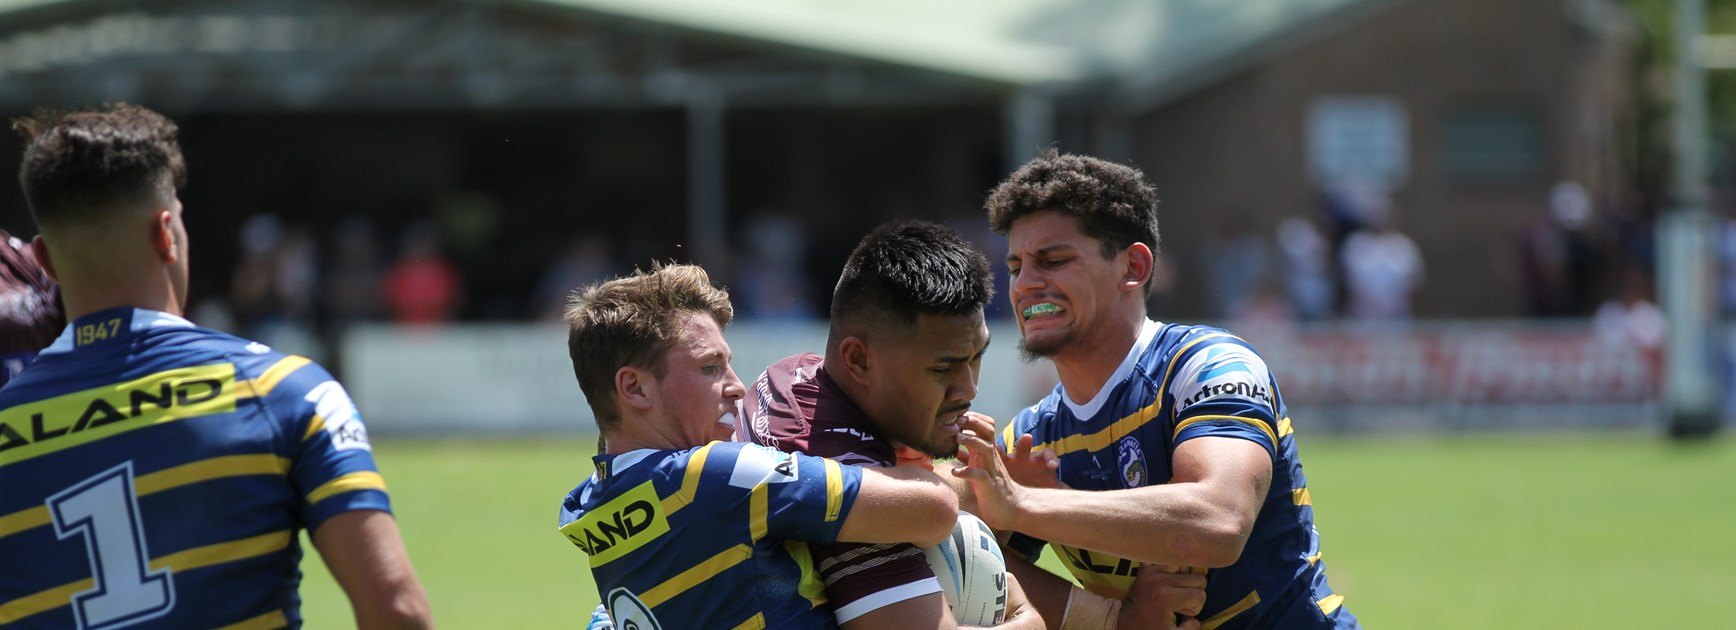 Manly lose 36-6 to Eels in SG Ball Cup